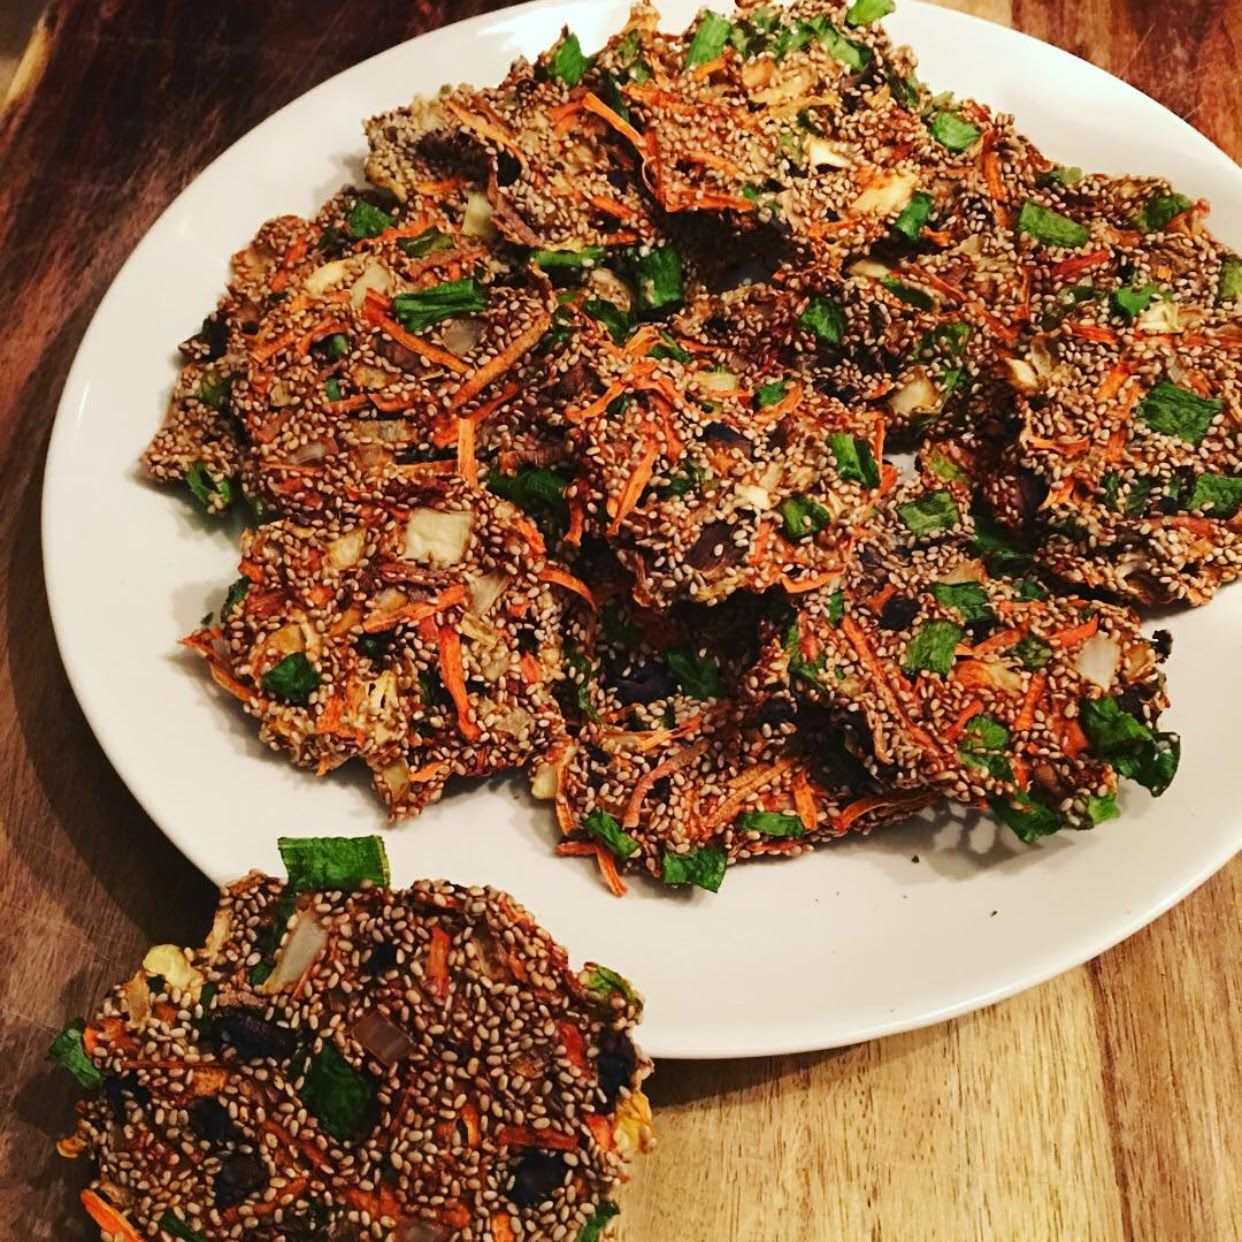 Raw vegan crispy veggie crackers tanny raw fully raw bread join me here to discover delicious high carb low fat hclf raw vegan hclfrv recipes from my kitchen plus heaps of health tips and advice to i forumfinder Choice Image